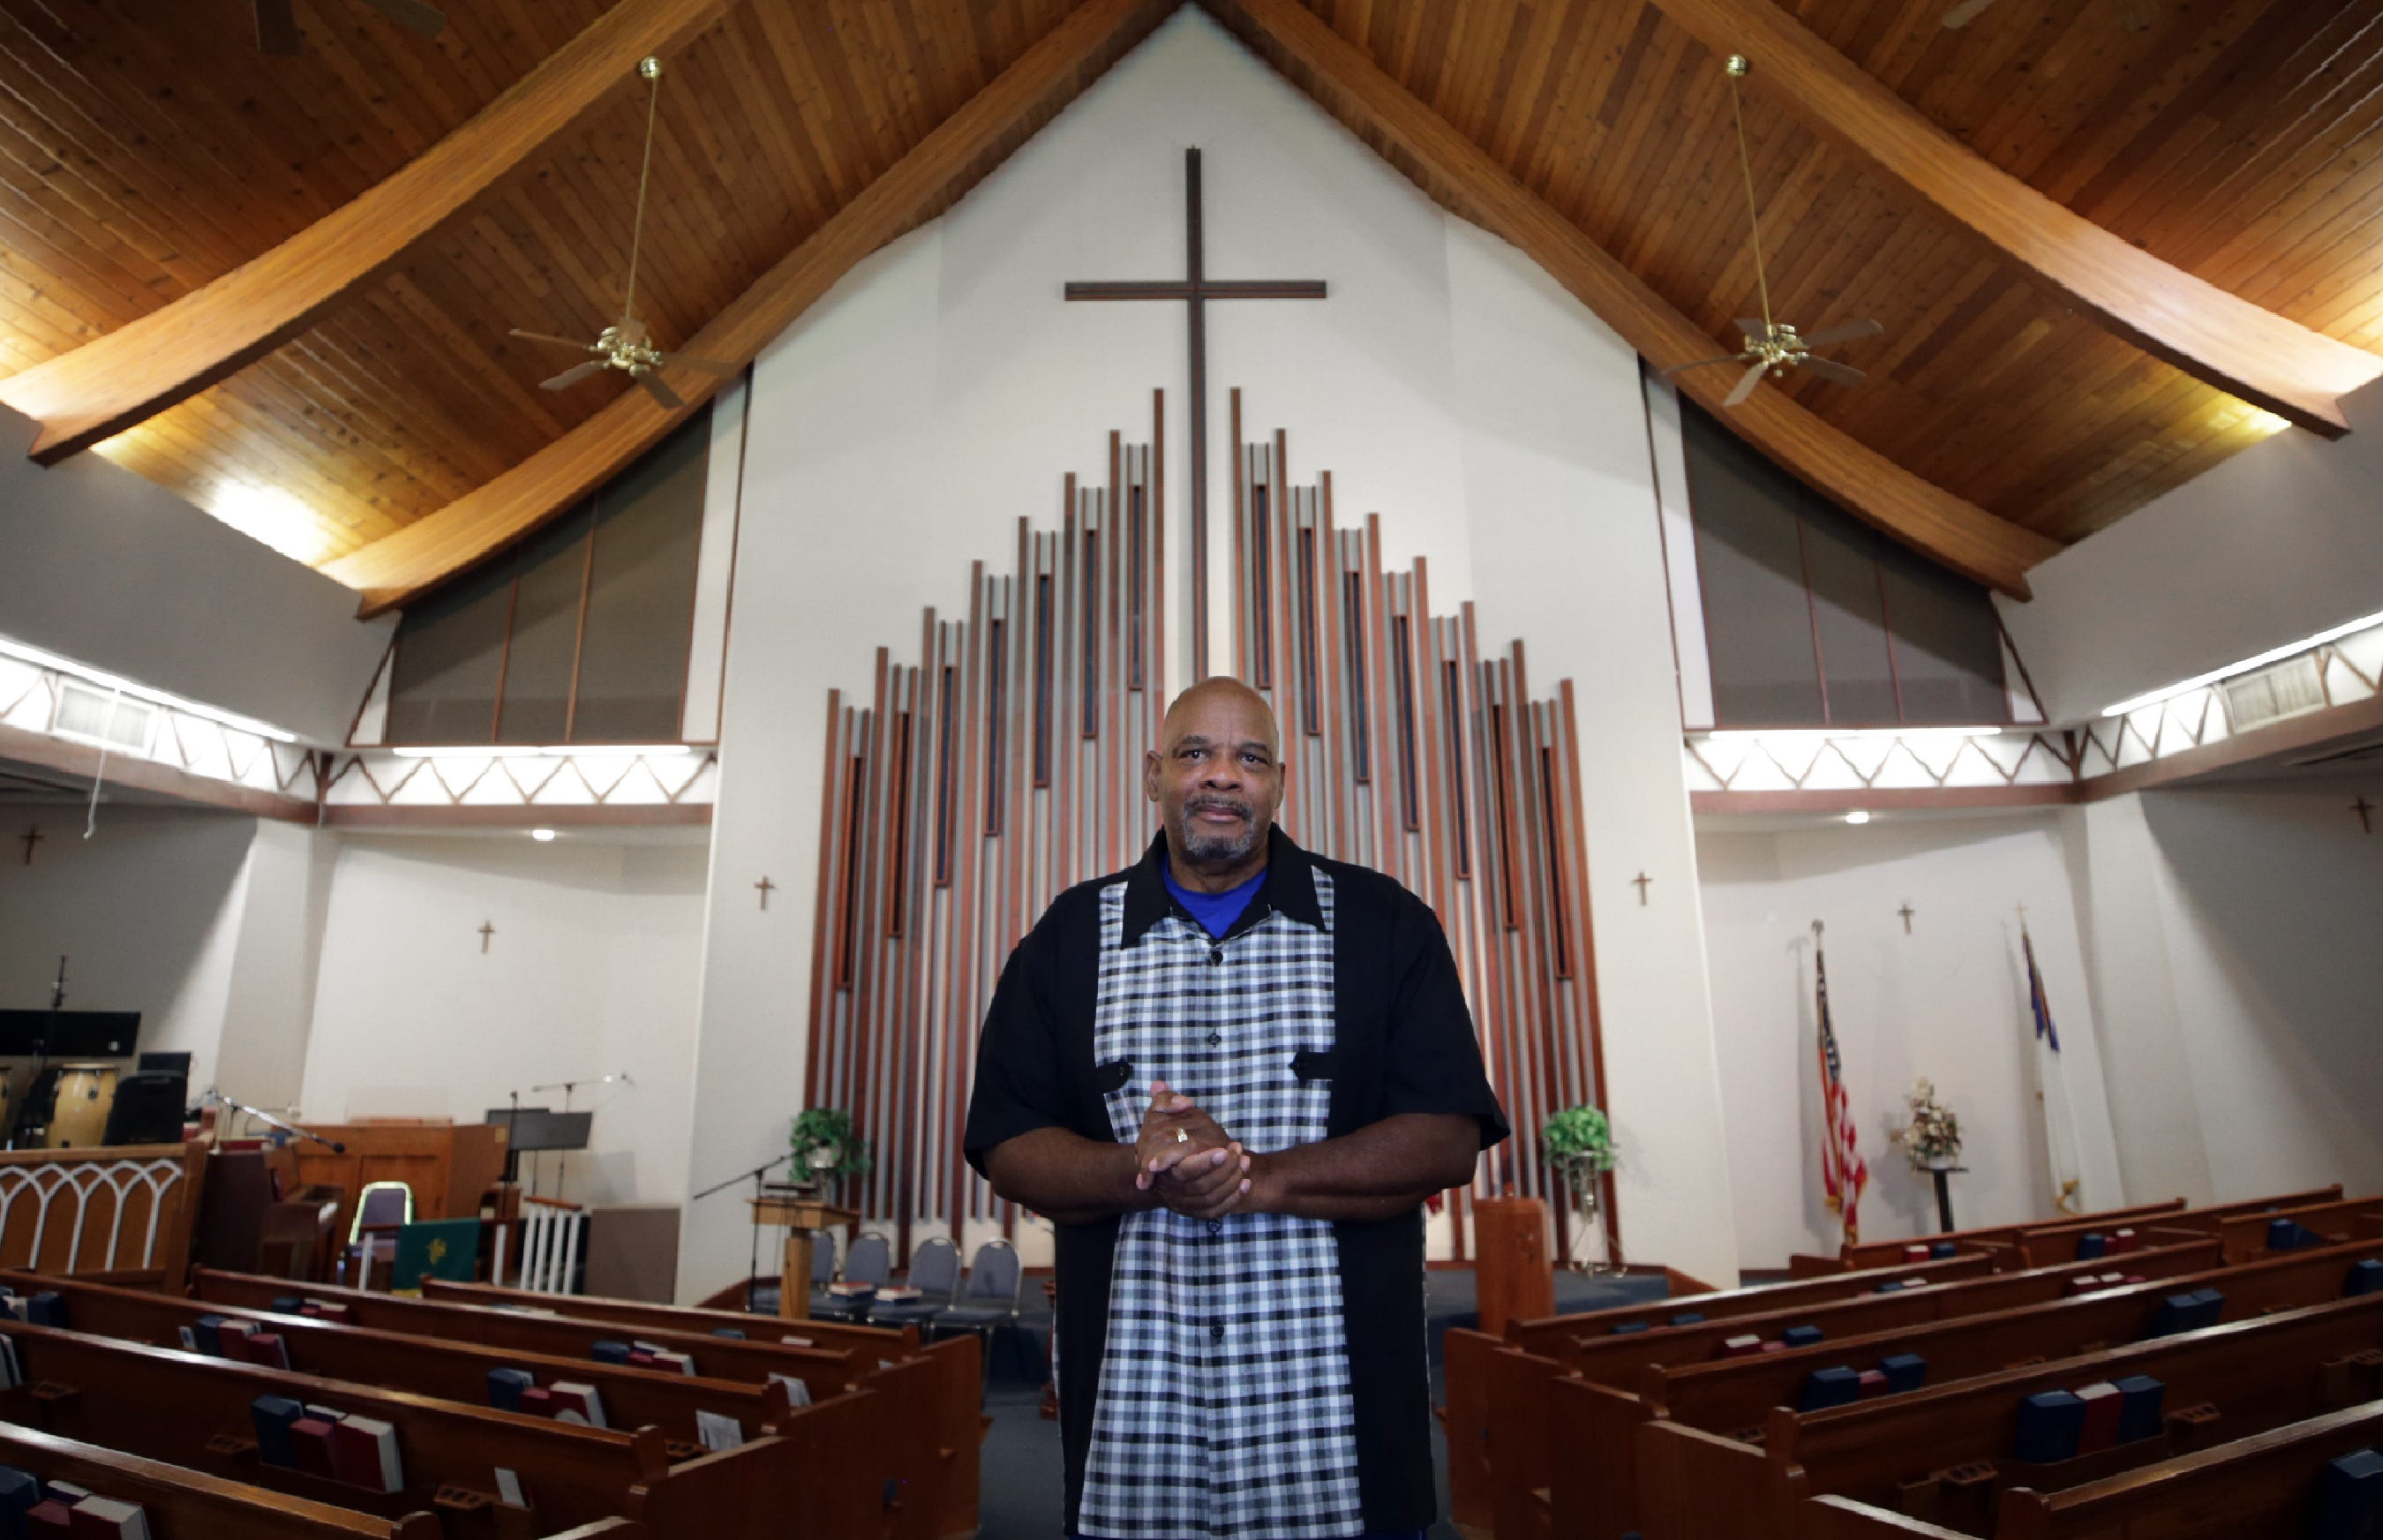 Michael Grady, pastor of Prince of Peace Christian Fellowship, came to El Paso when he was stationed at Fort Bliss. He's a past president of the local NAACP, the oldest in the state, and is currently part of a citizen-led effort to start a police accountability commission.